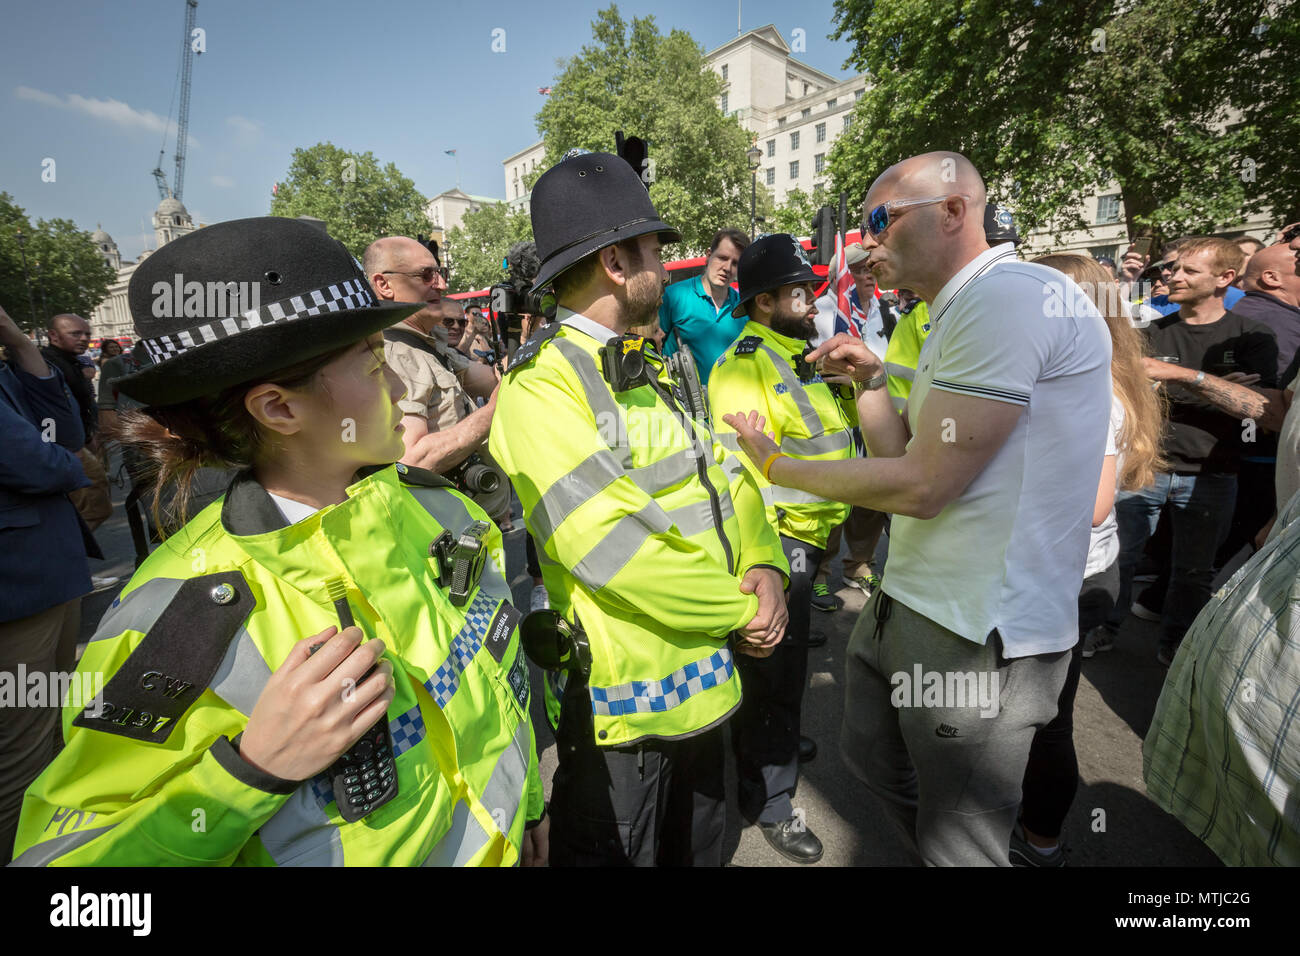 Nationalist supporters of Tommy Robinson protest opposite Downing Street in London against his recent imprisonment for contempt of court. - Stock Image